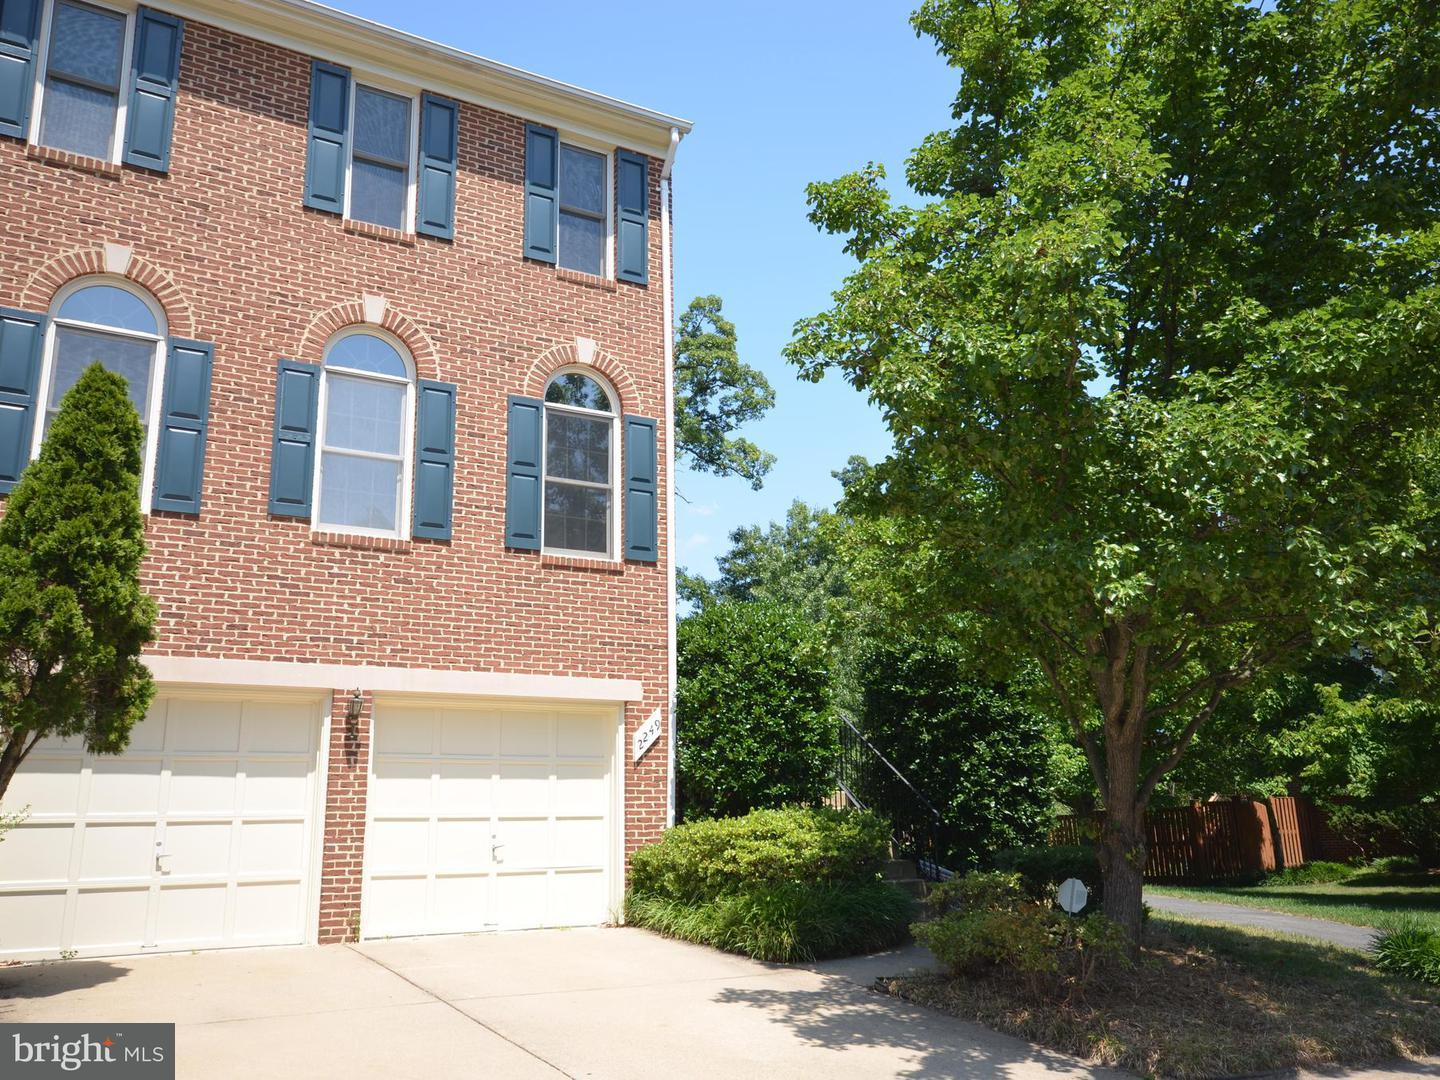 Other Residential for Rent at 2249 Journet Dr Dunn Loring, Virginia 22027 United States